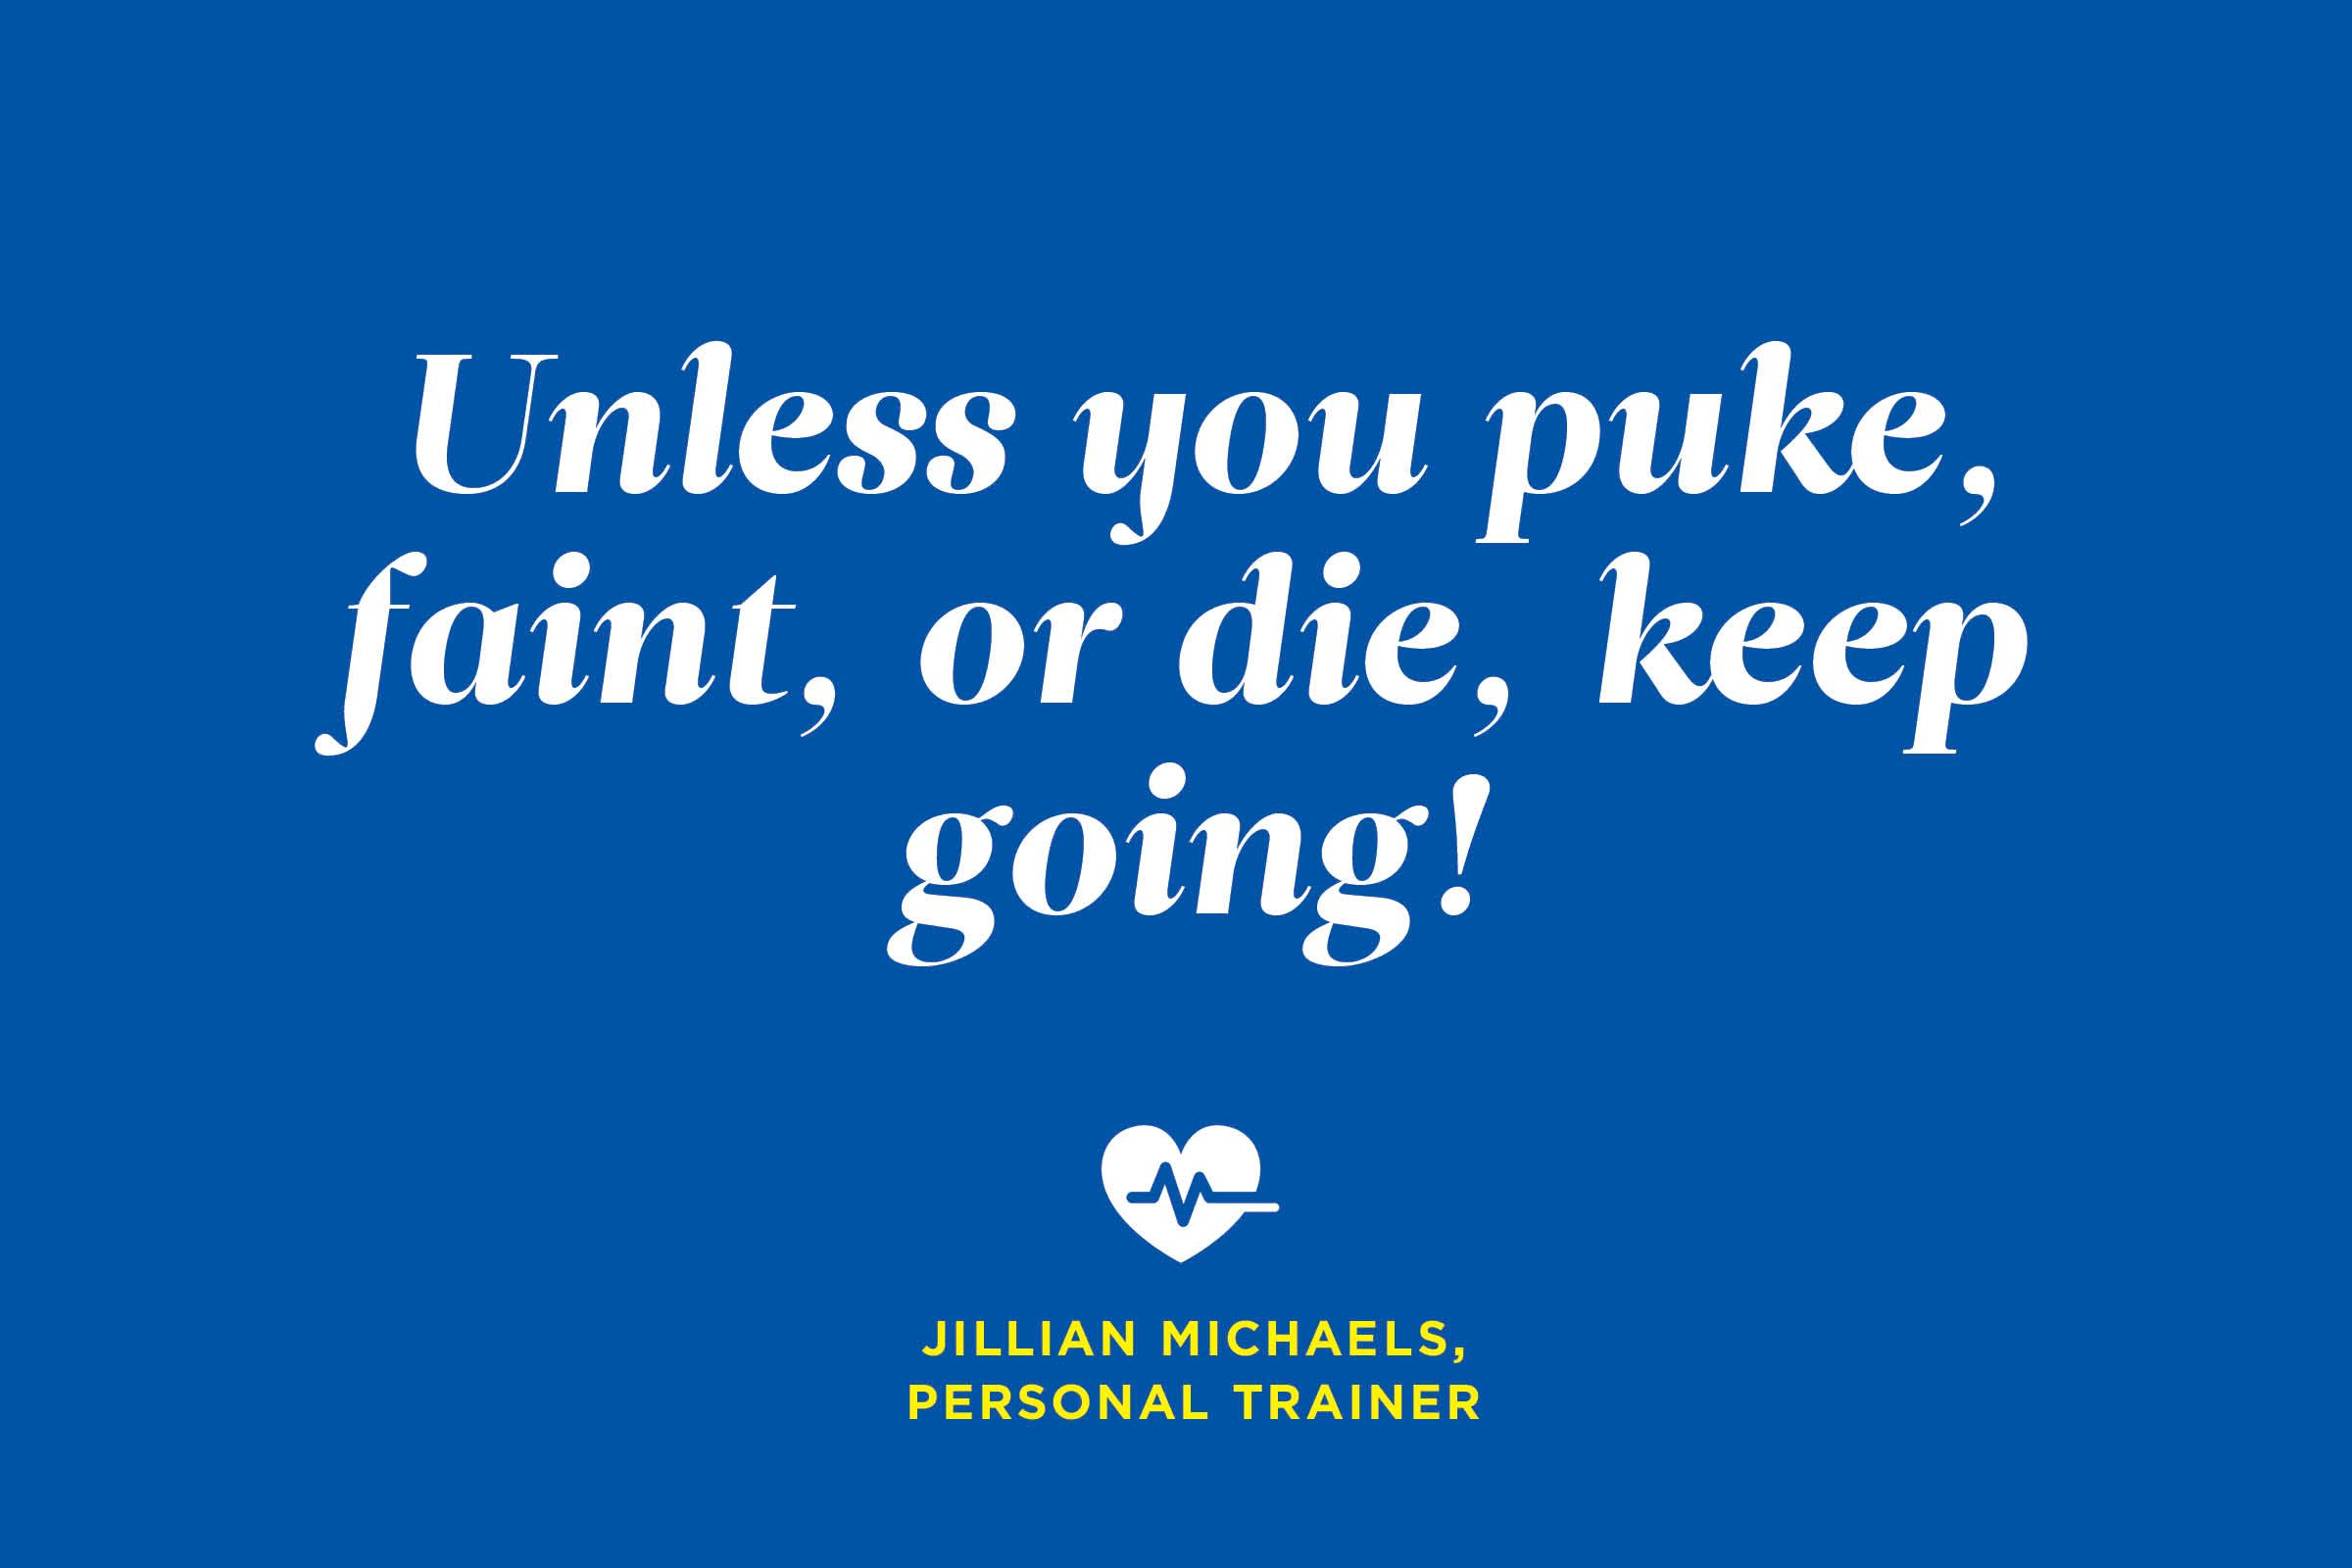 Motivational Quotes To Help You Lose Weight